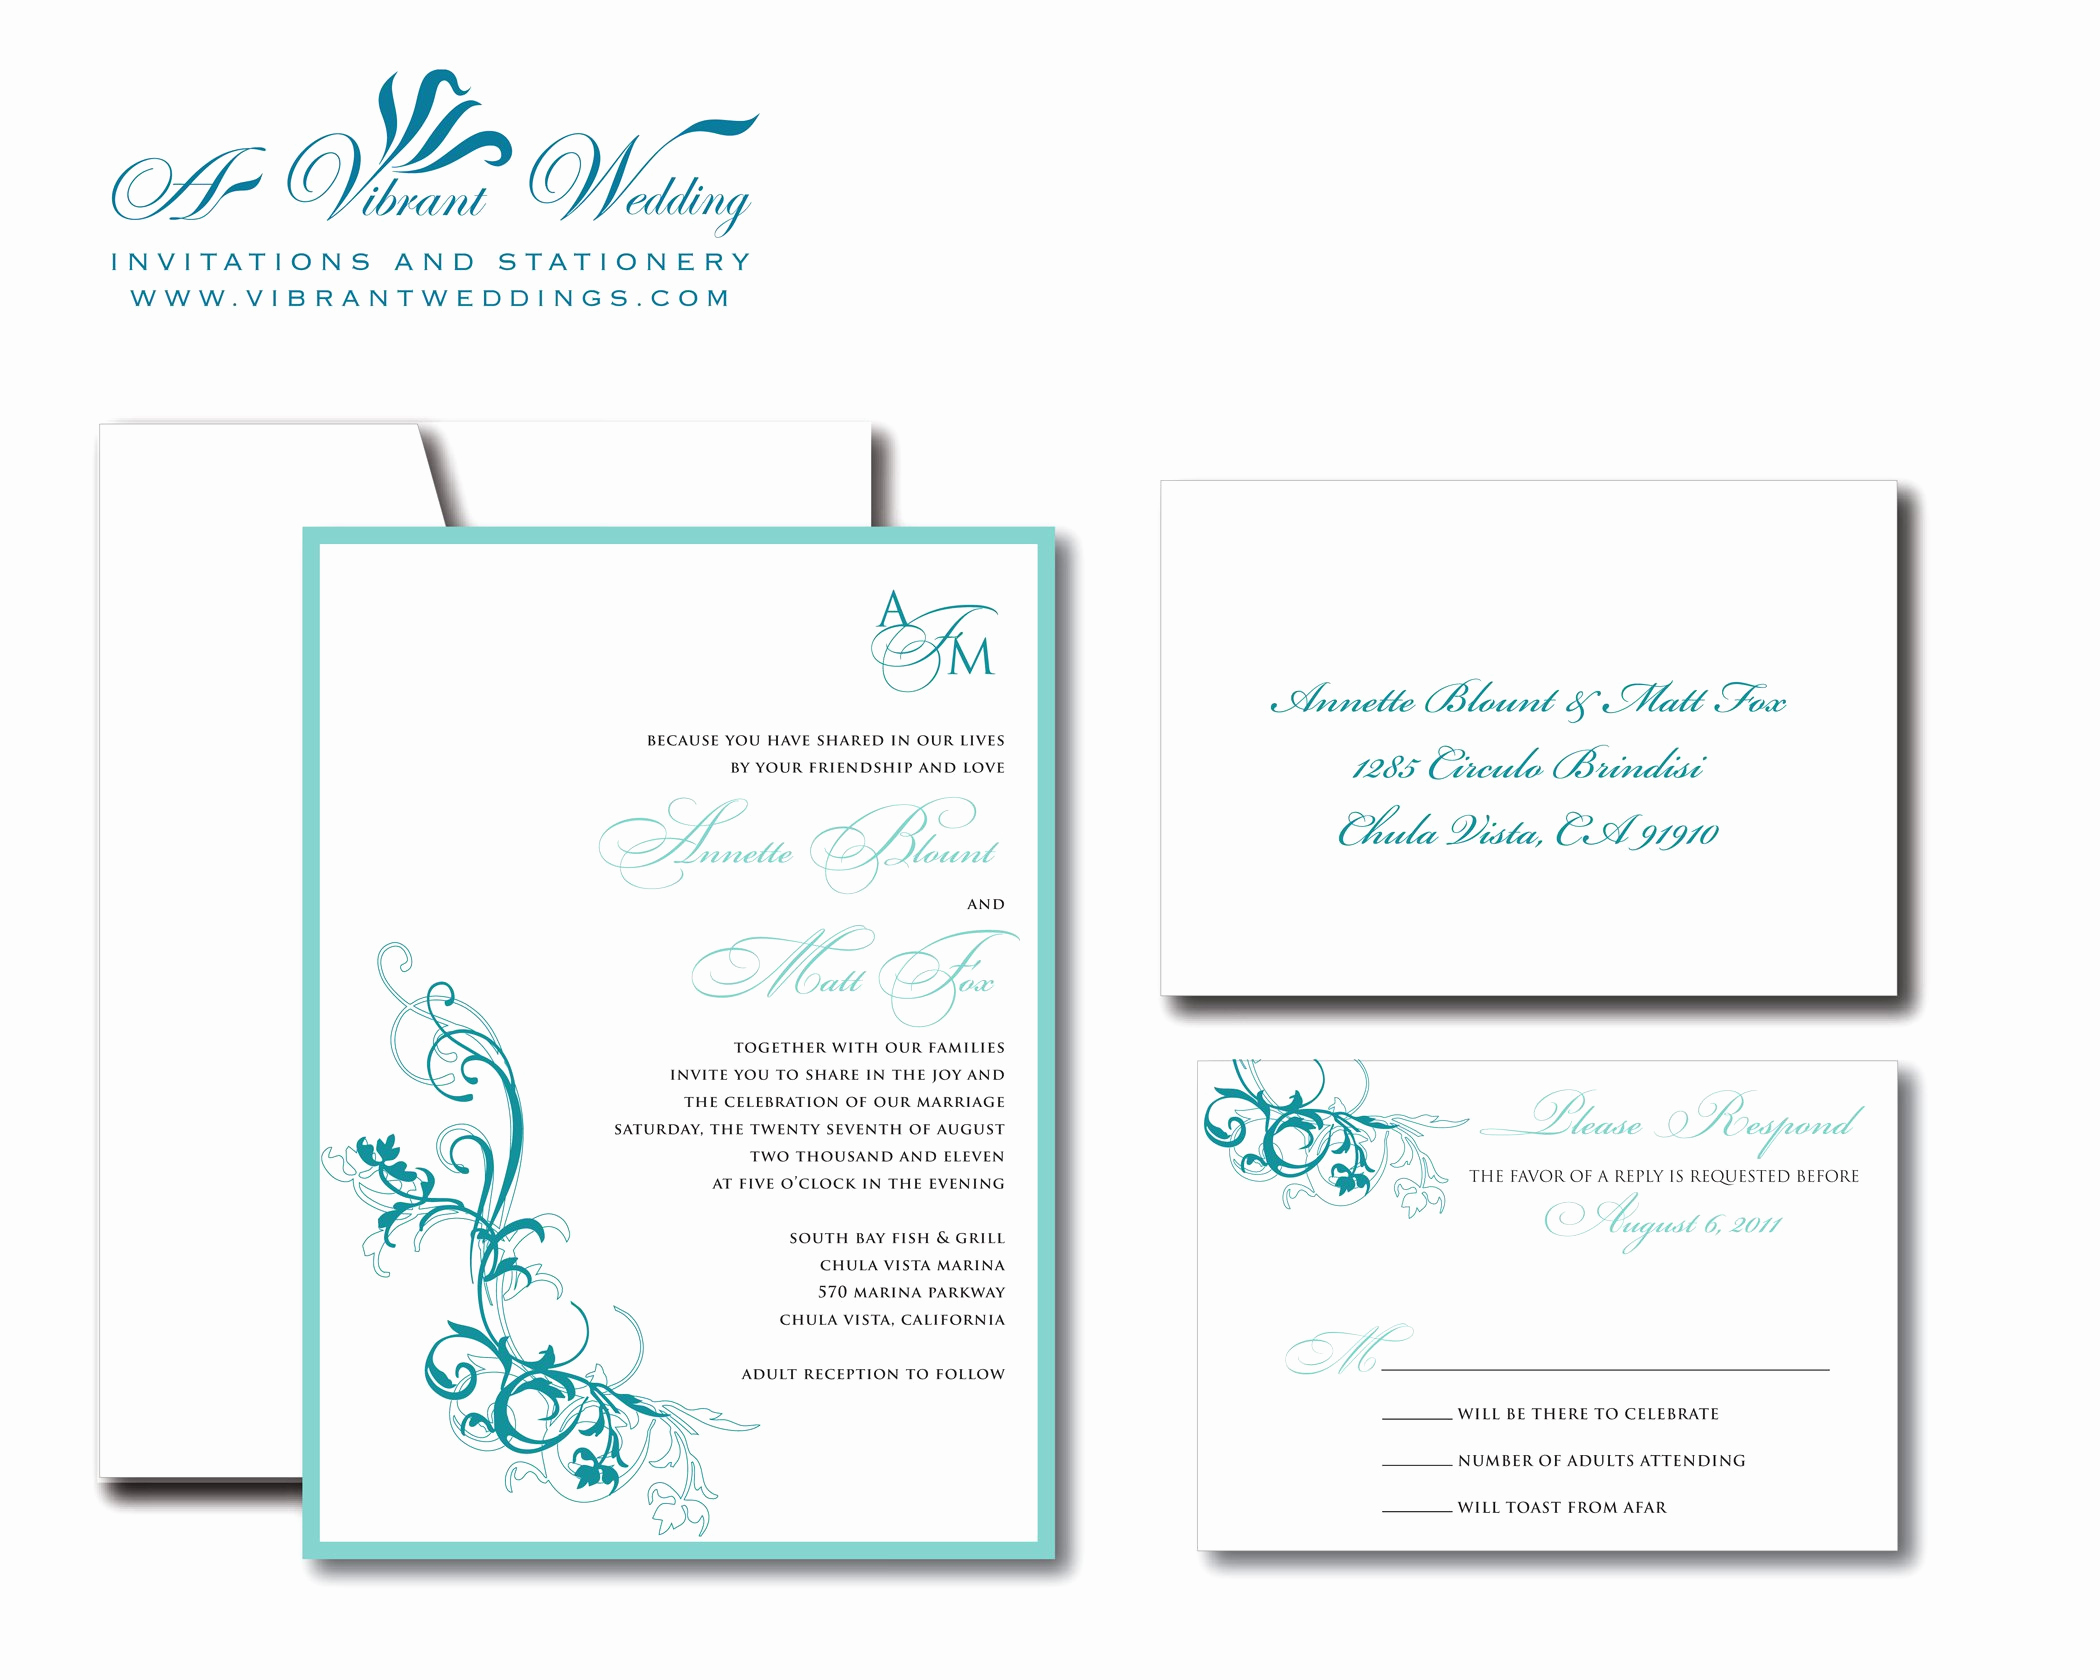 Free Wedding Invitation Templates Downloads Beautiful Wedding Invite Template Wedding Invitation Templates